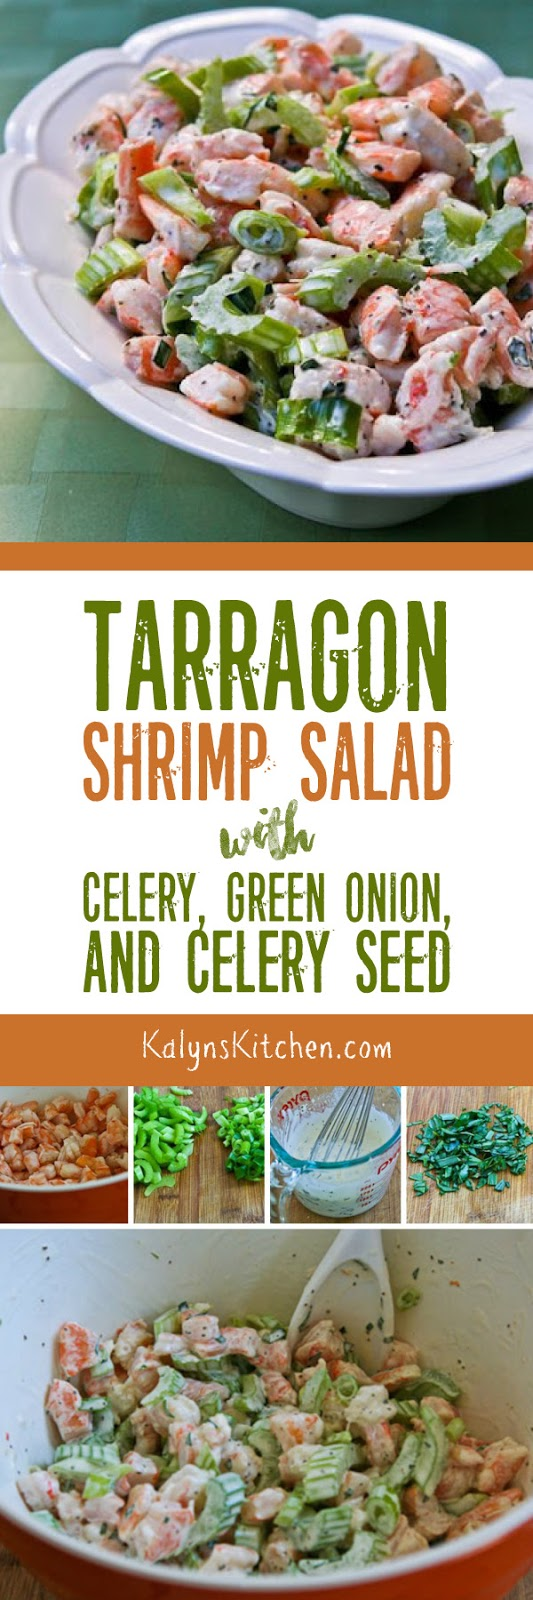 Tarragon Shrimp Salad with Celery, Green Onion, and Celery Seed [found ...